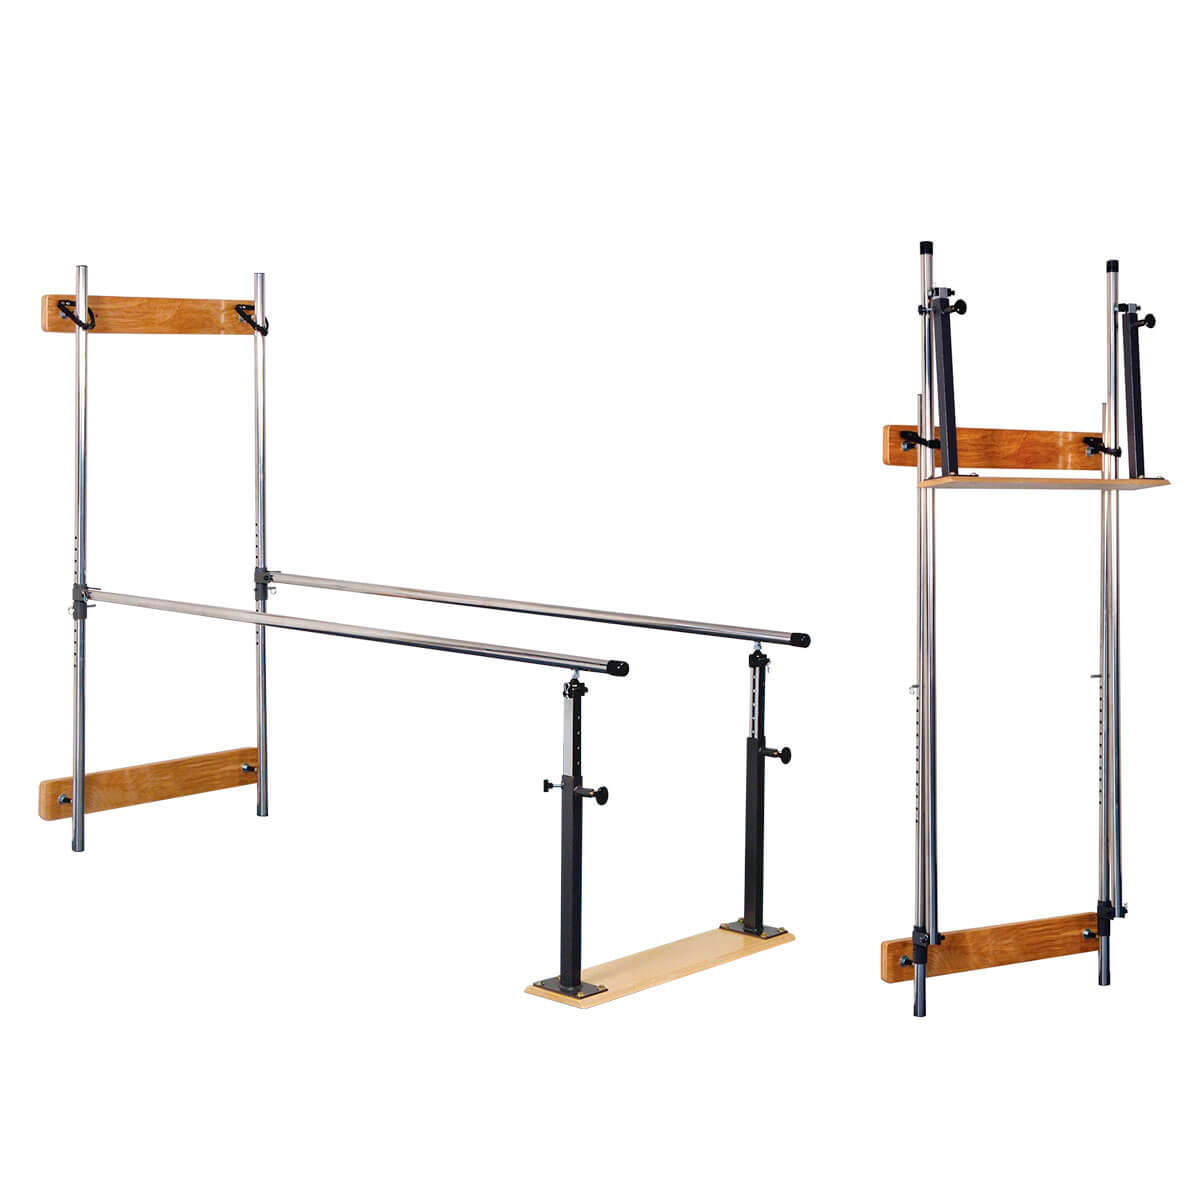 3B Scientific Wall Mounted Folding Parallel Bars - 7 ft